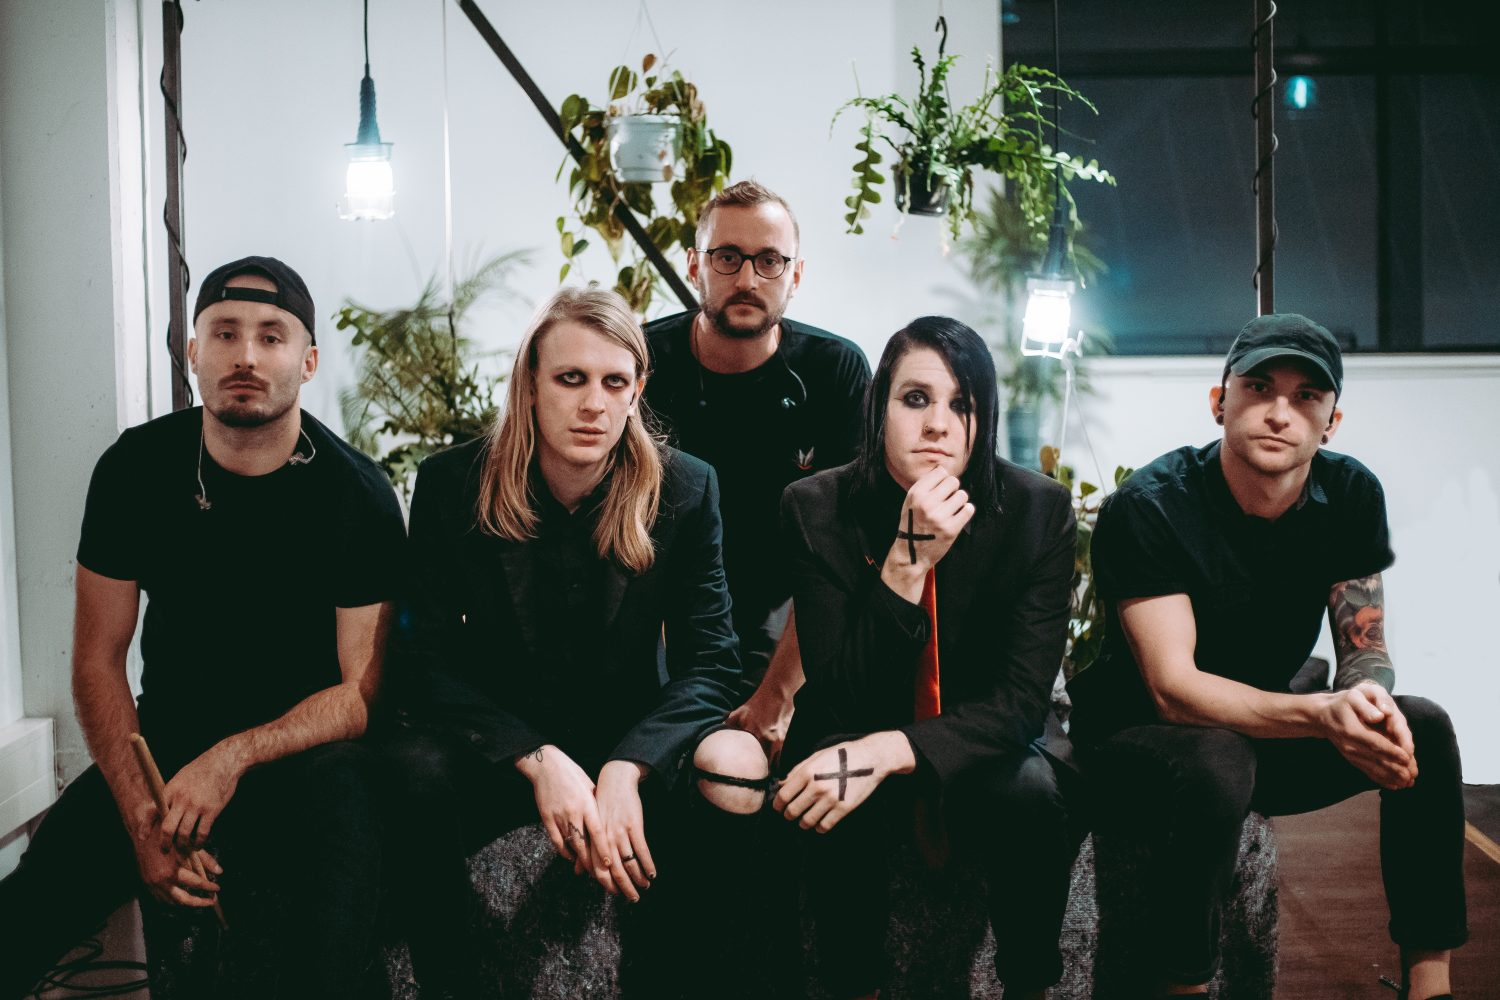 As It Is have released the second in their EP series reimagining their 2018 album 'The Great Depression'